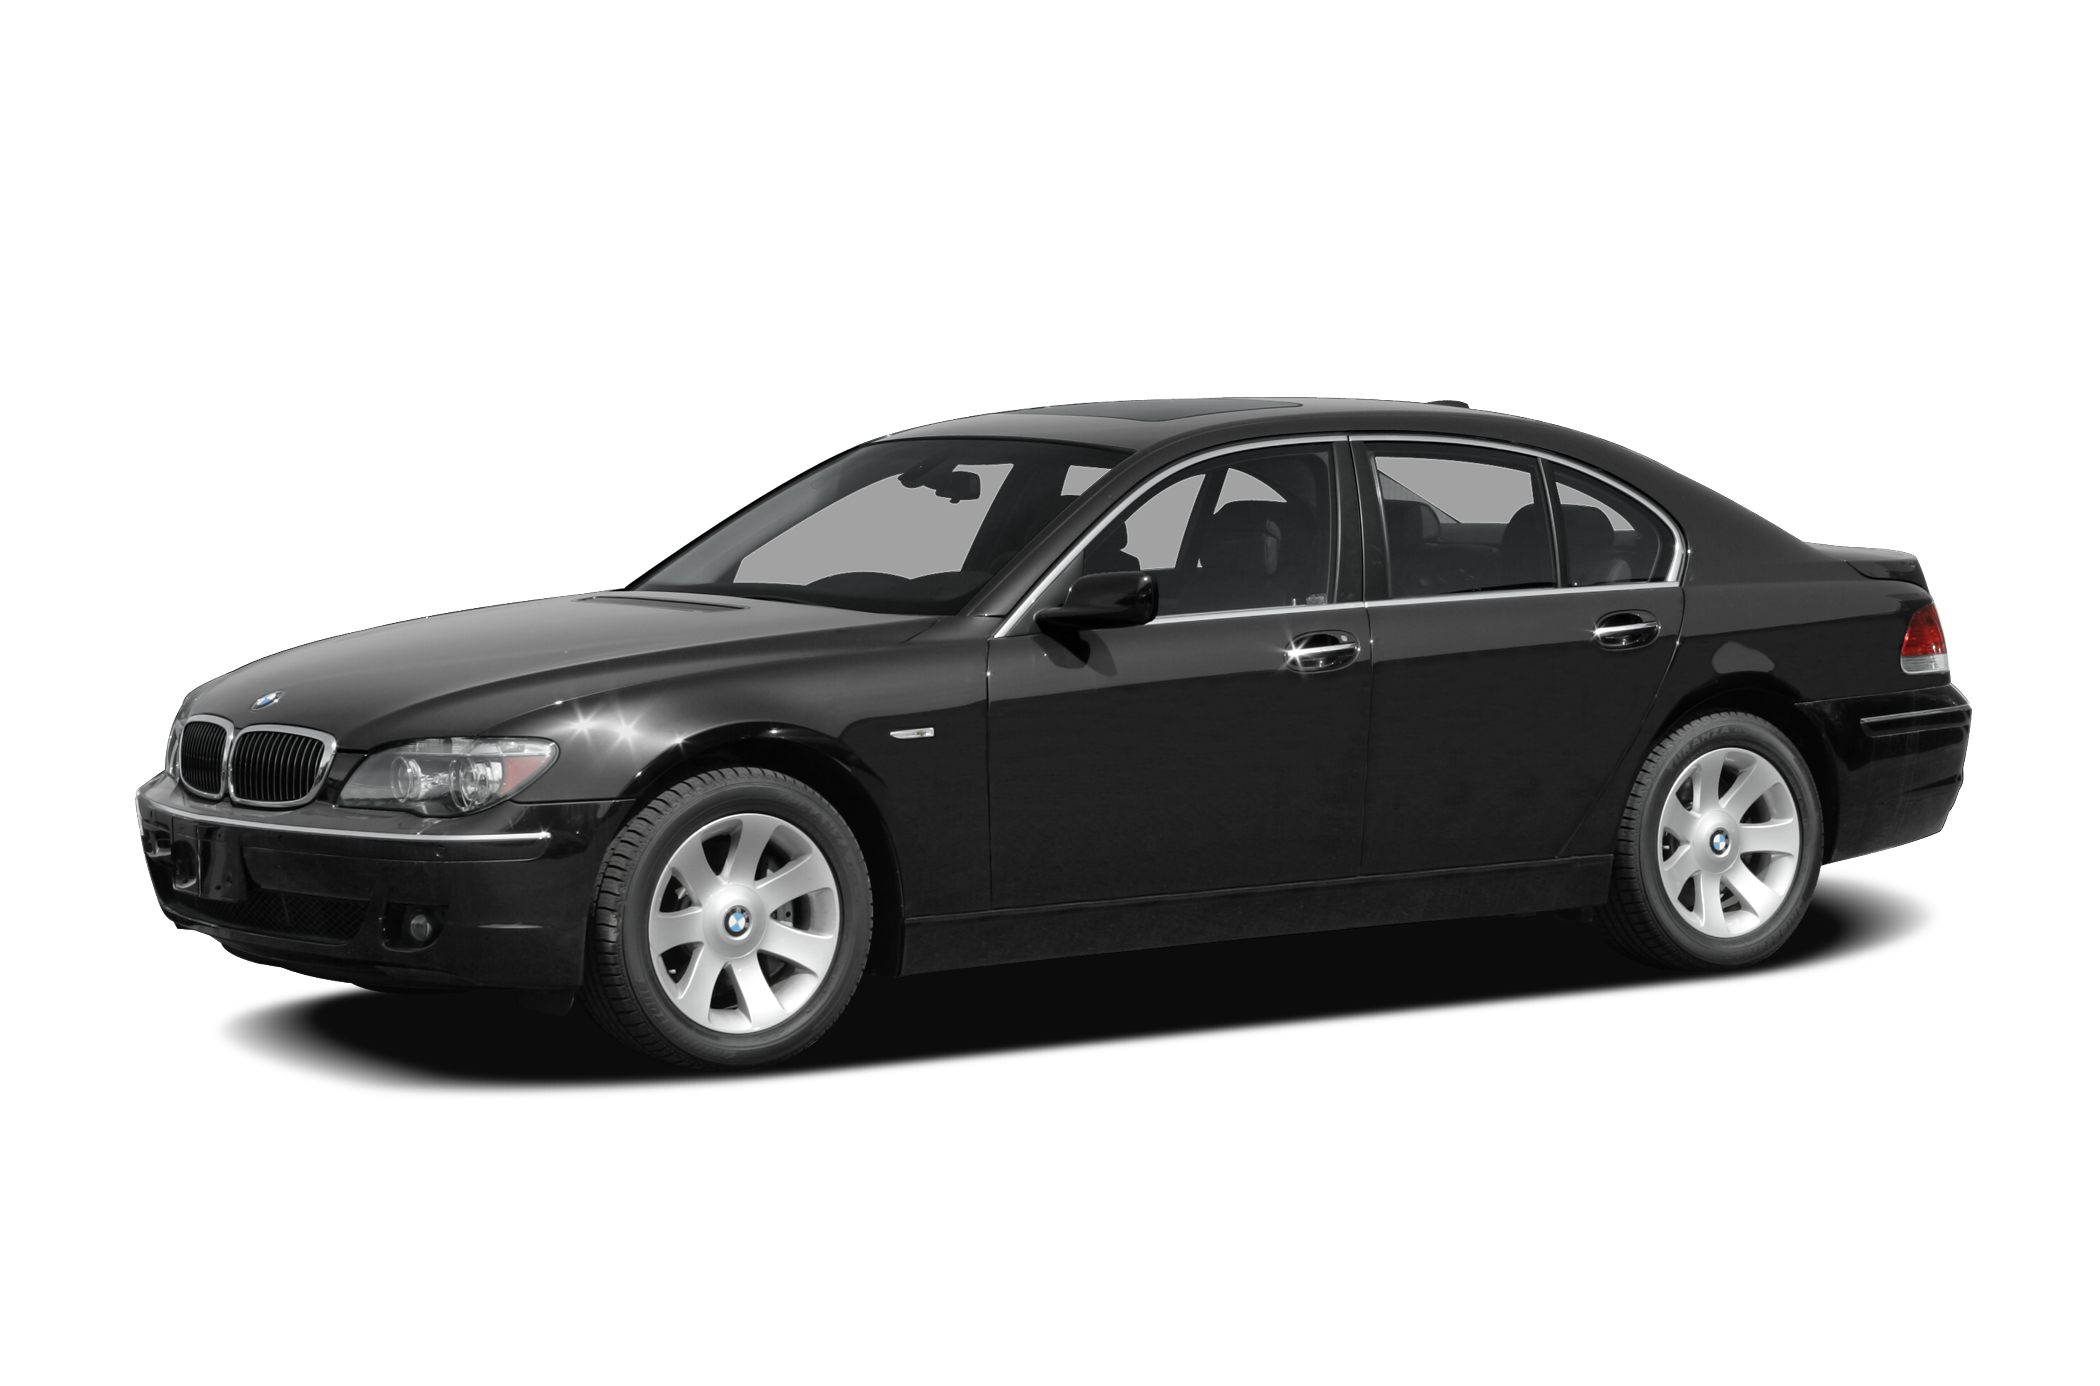 2007 BMW 750 Li Sedan for sale in Jacksonville for $19,988 with 90,916 miles.